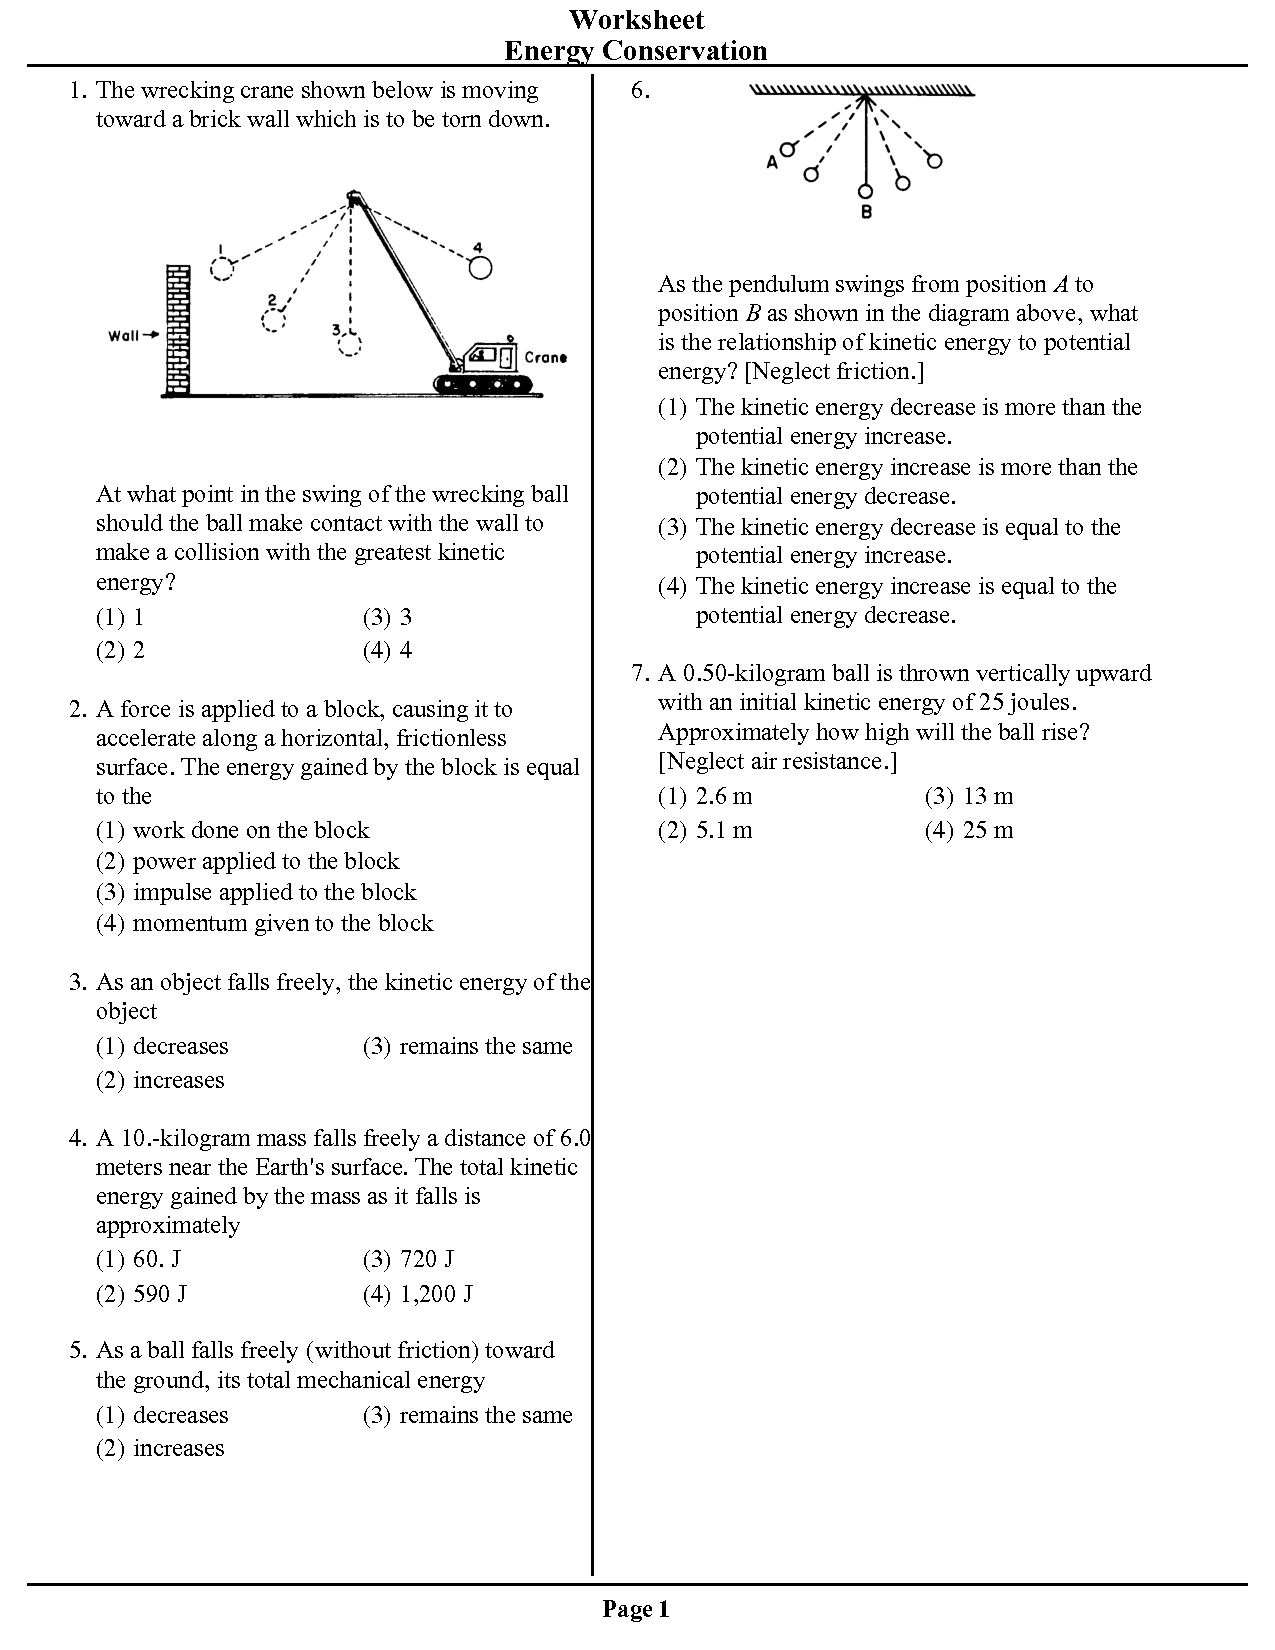 16 Best Images Of Conservation And Energy Transformation Worksheet Answer